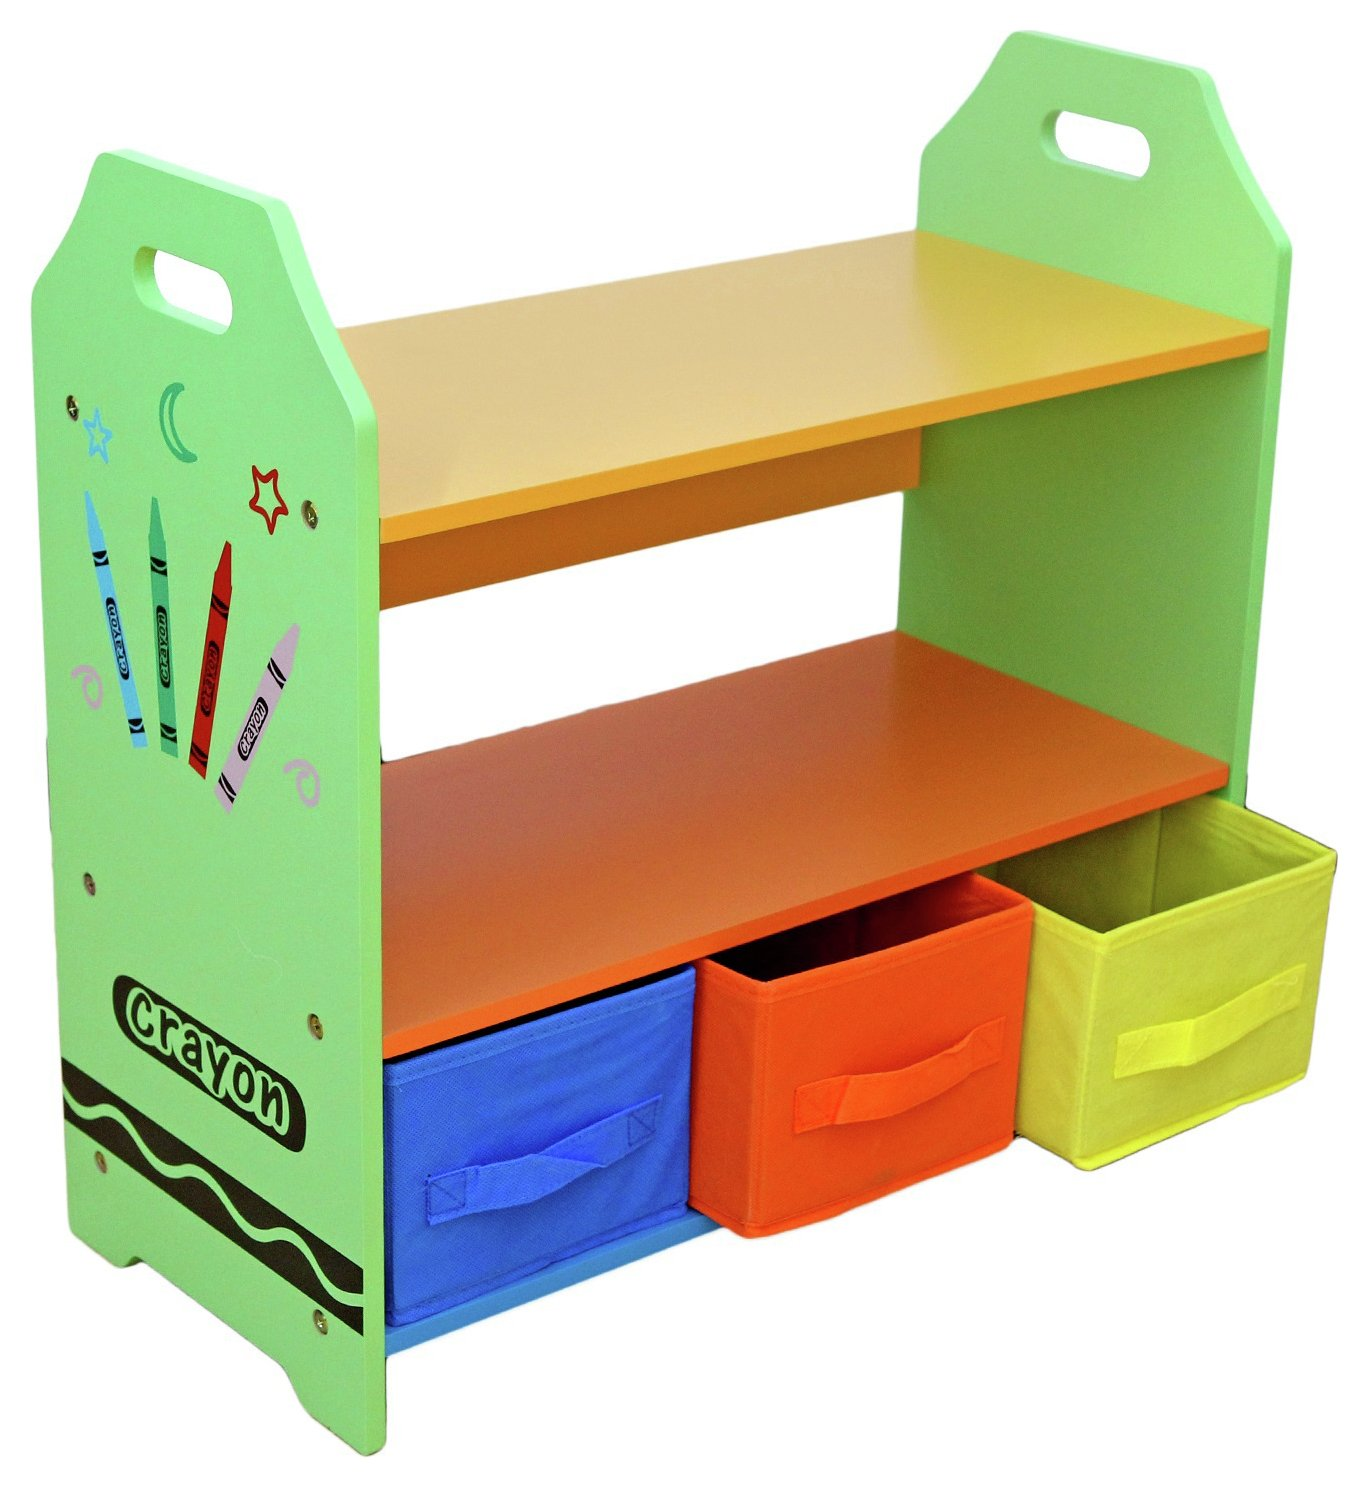 Image of Bebe Style Crayon Shelves and Storage - Green.